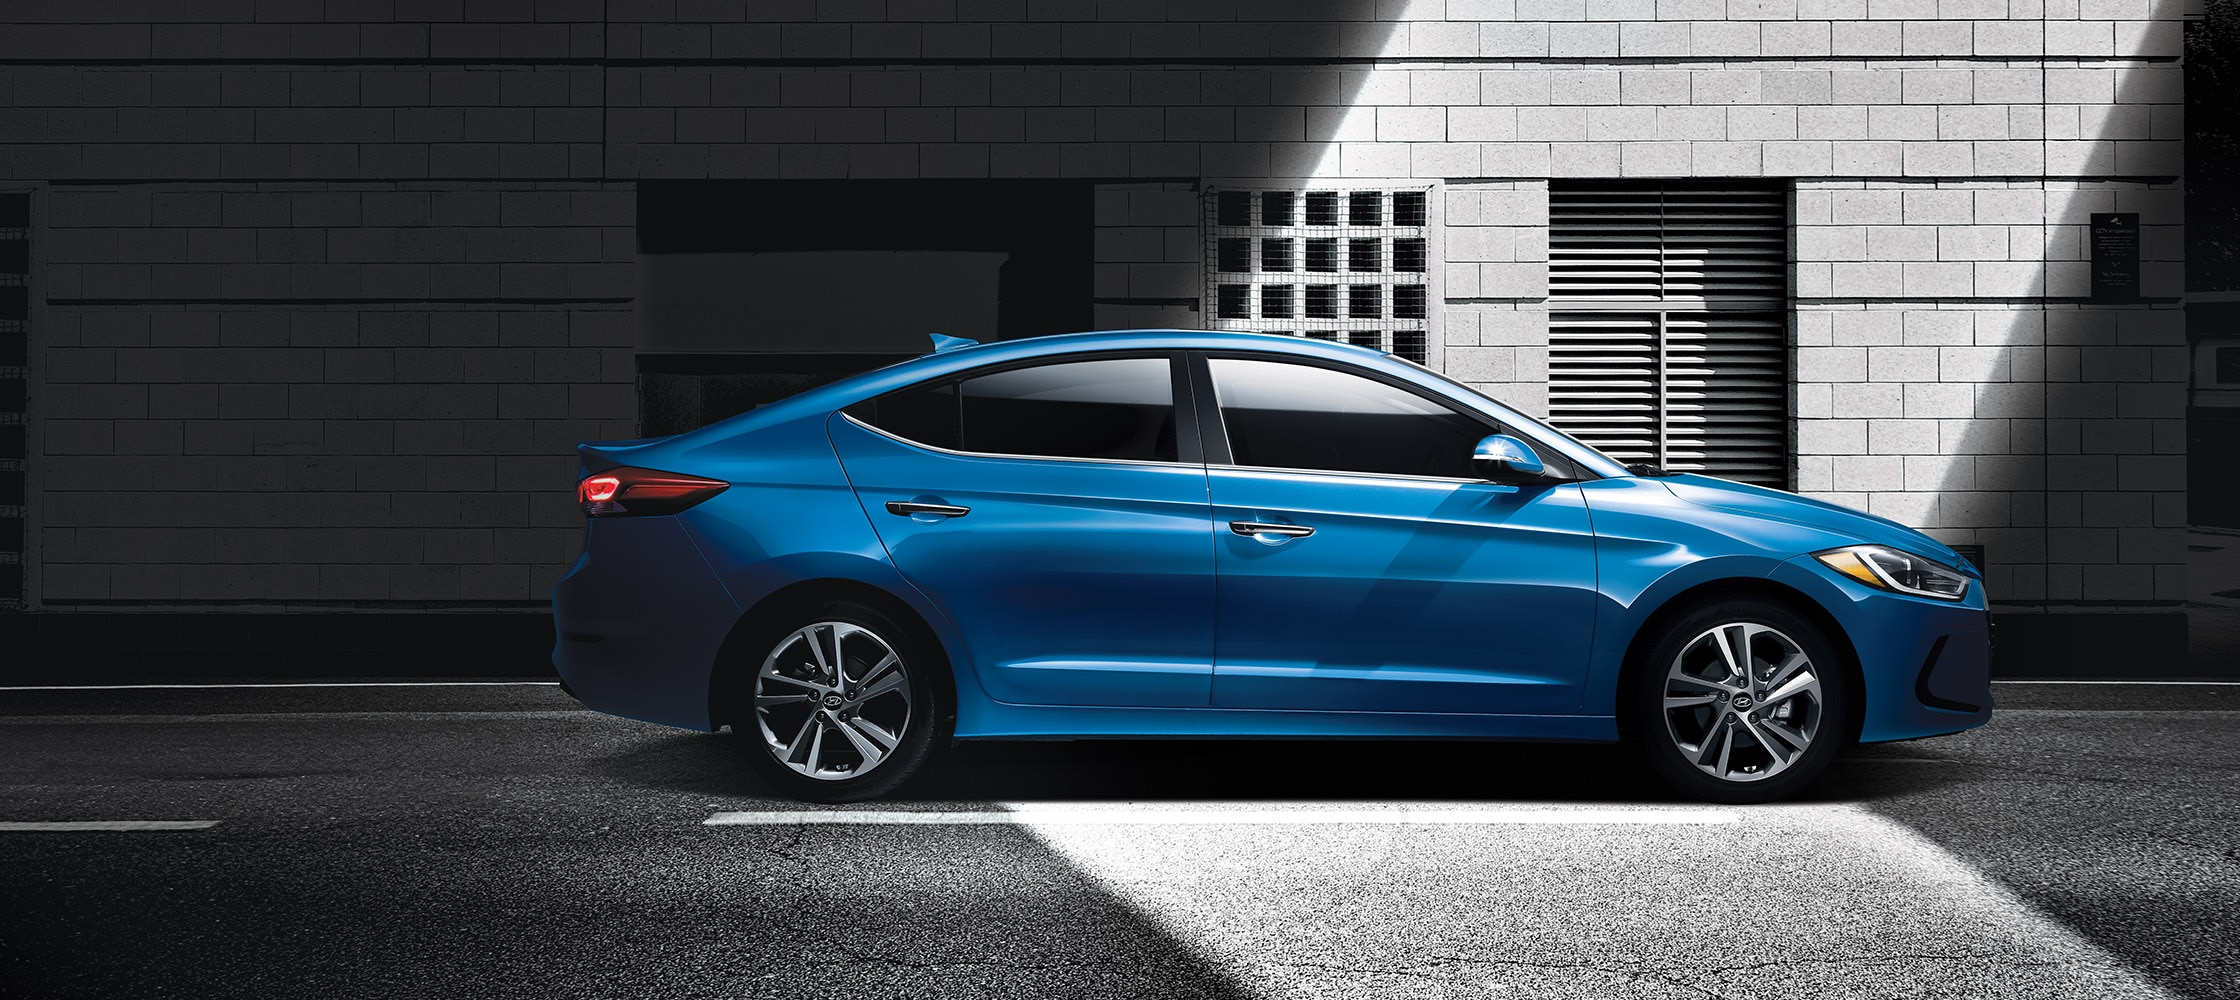 In Both Shadow And Light The All New 2017 Elantra Is Stunning By Design Shown Here In Feature Colour Moon Light Blue